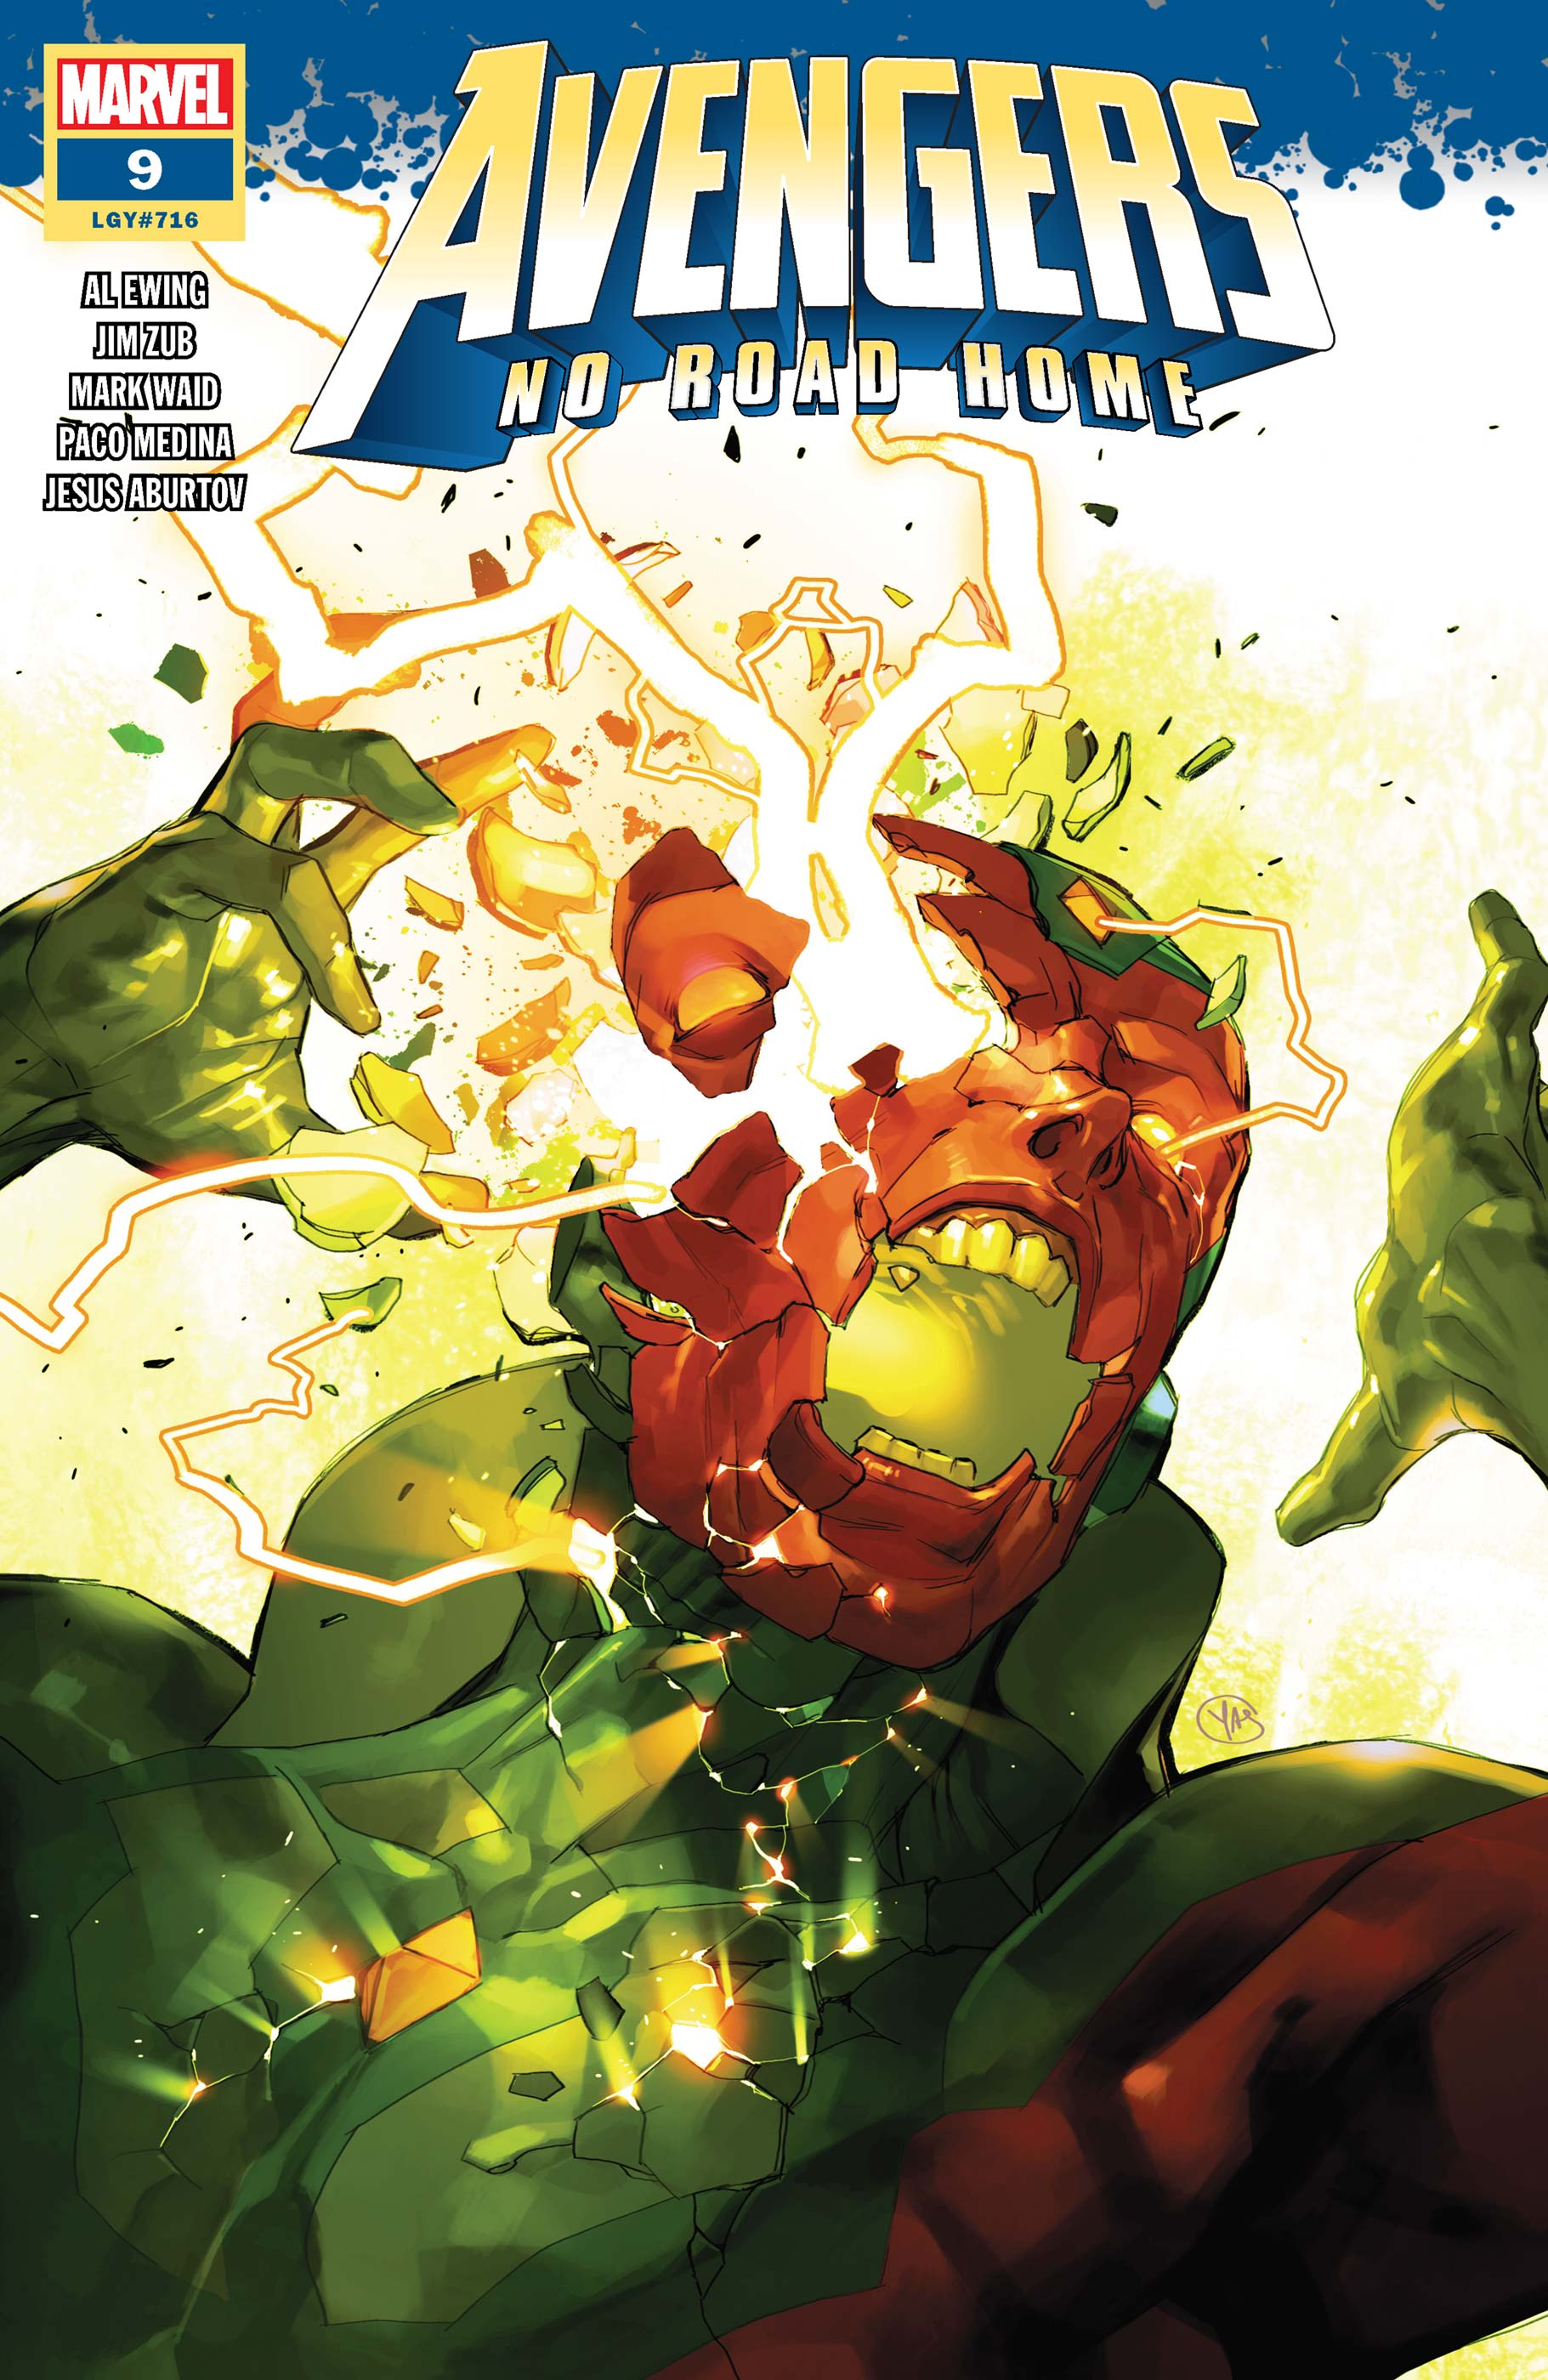 Avengers No Road Home (2019) #9